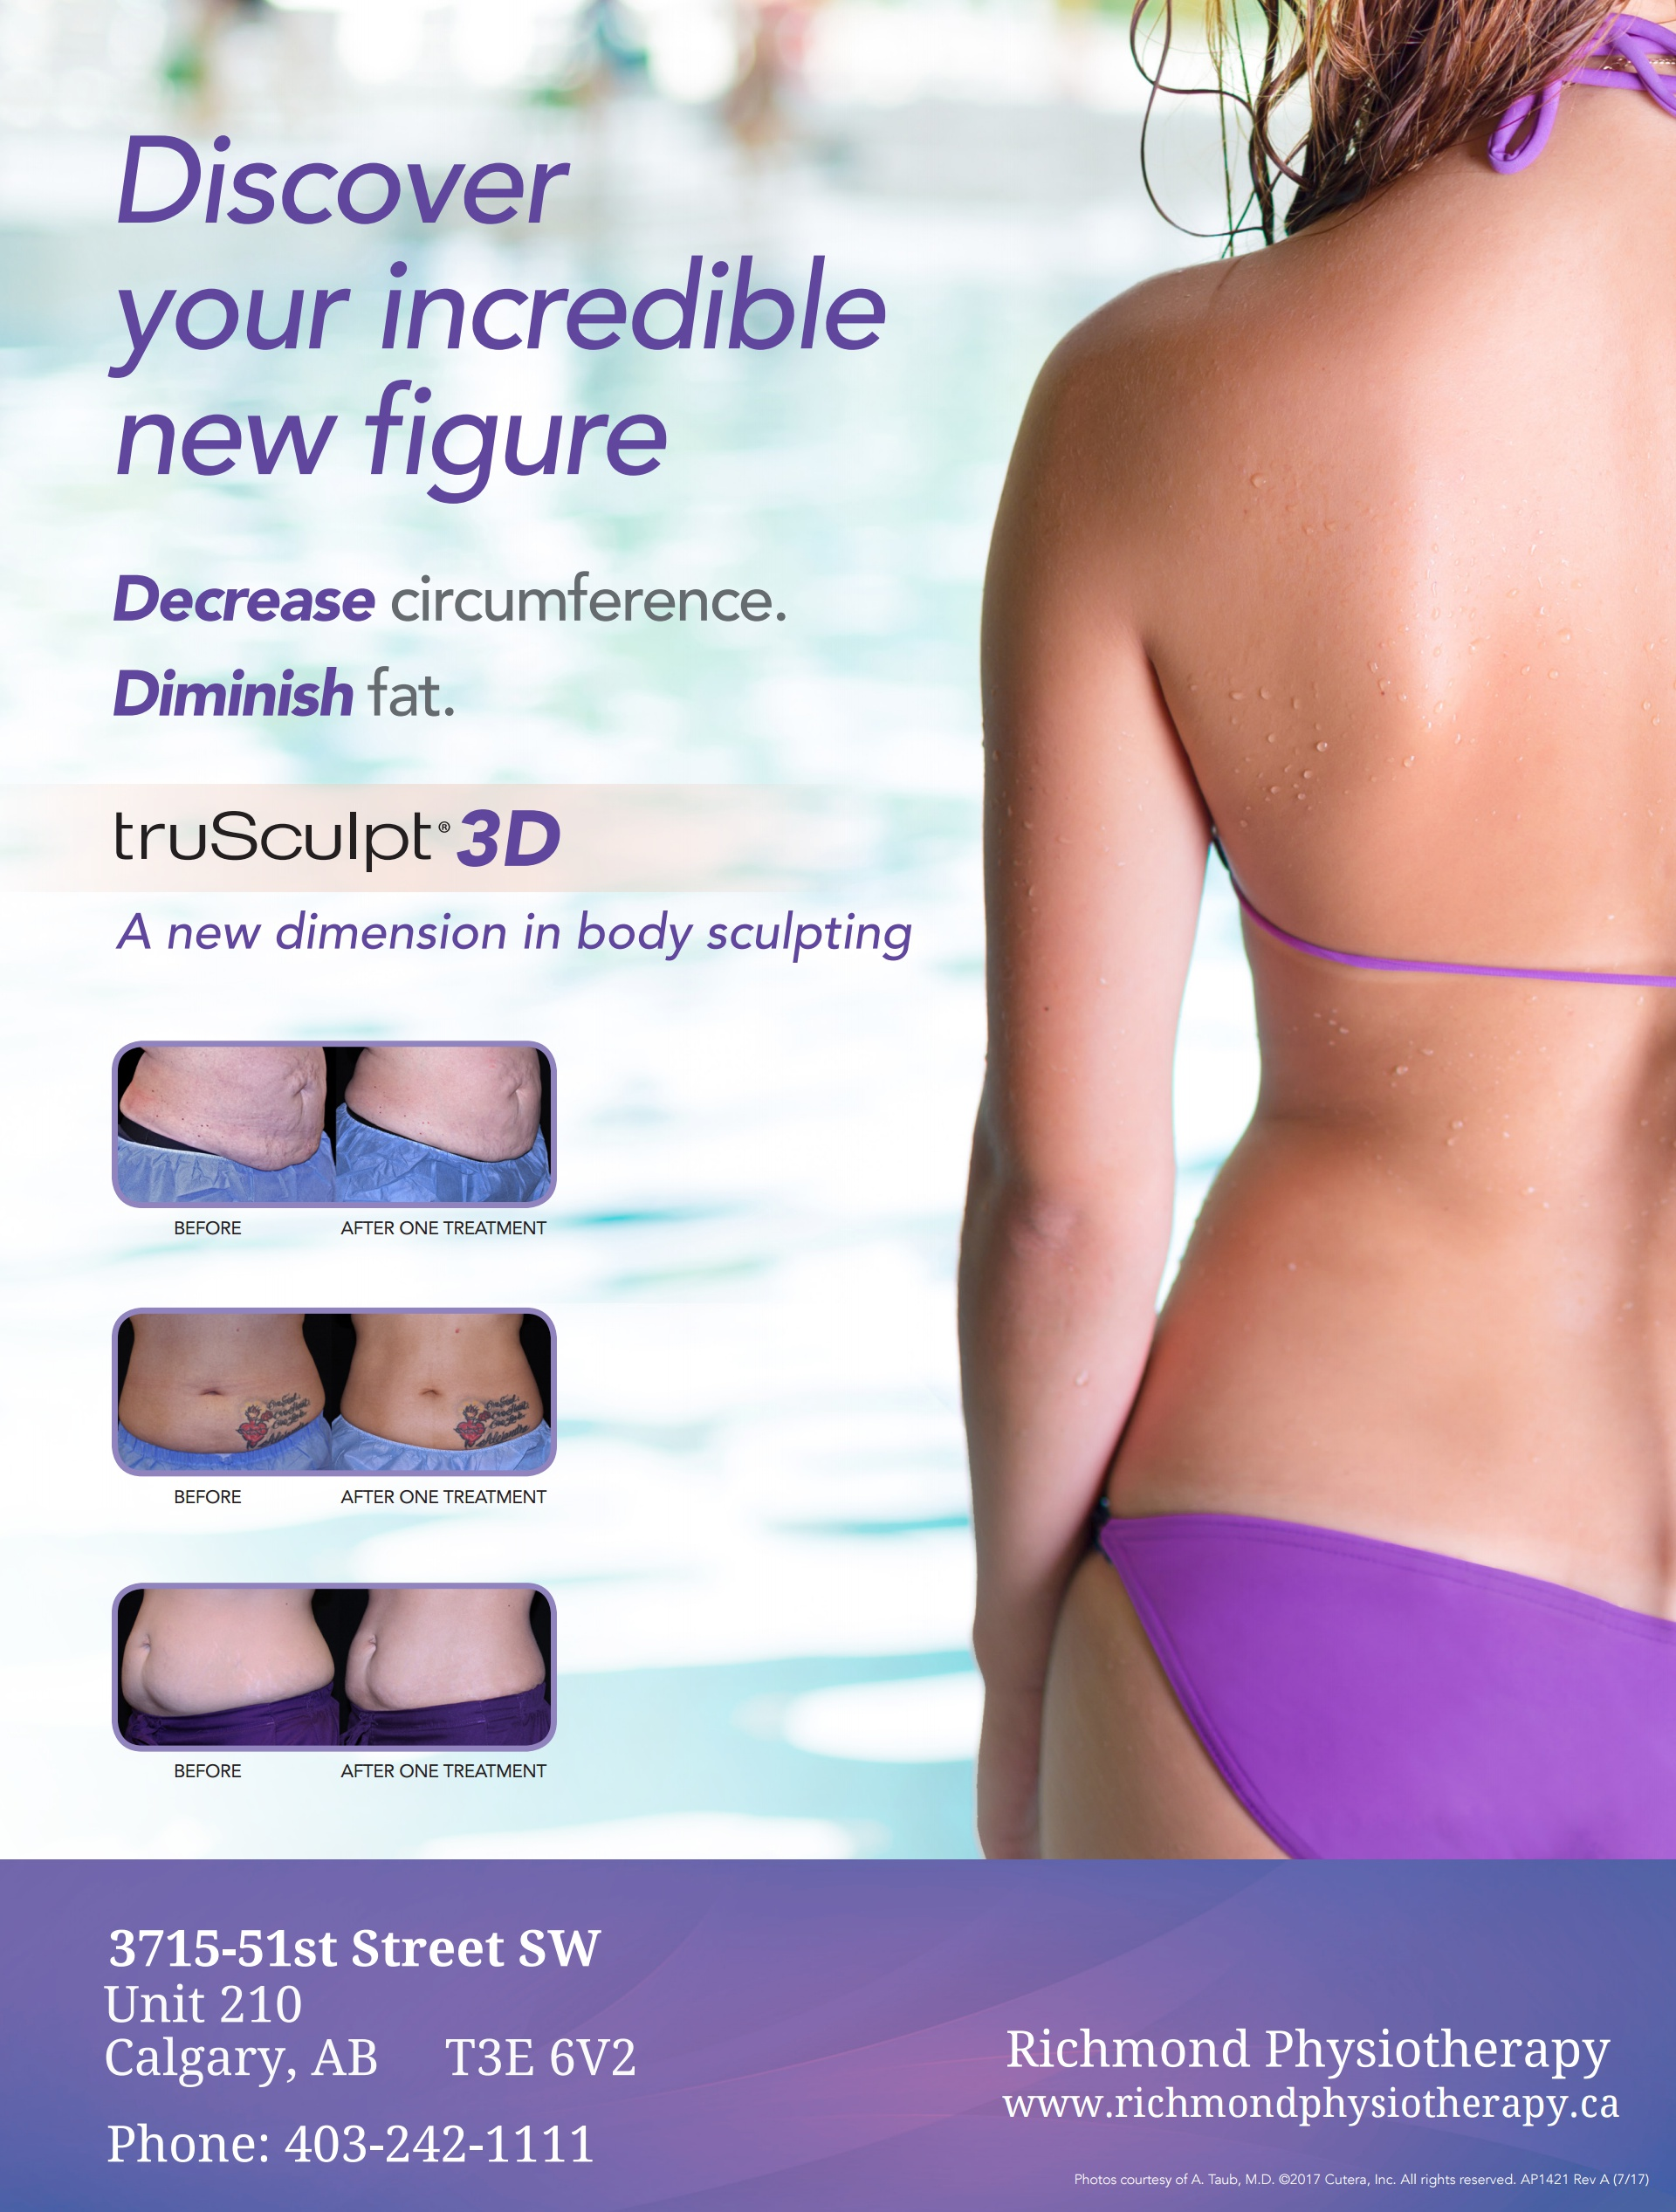 truSculpt 3D - A new dimension in body sculptingThe truSculpt® 3D body sculpting procedure takes a multi-dimensional approach to circumferential reduction and body sculpting by delivering a precise therapeutic temperatures to the subcutaneous adipose tissue in a unique way that gives patients the highest clinical efficacy in the shortest possible treatment time. This Targeted, Repeatable and Uniform approach ensures TRU 3D results are achieved.